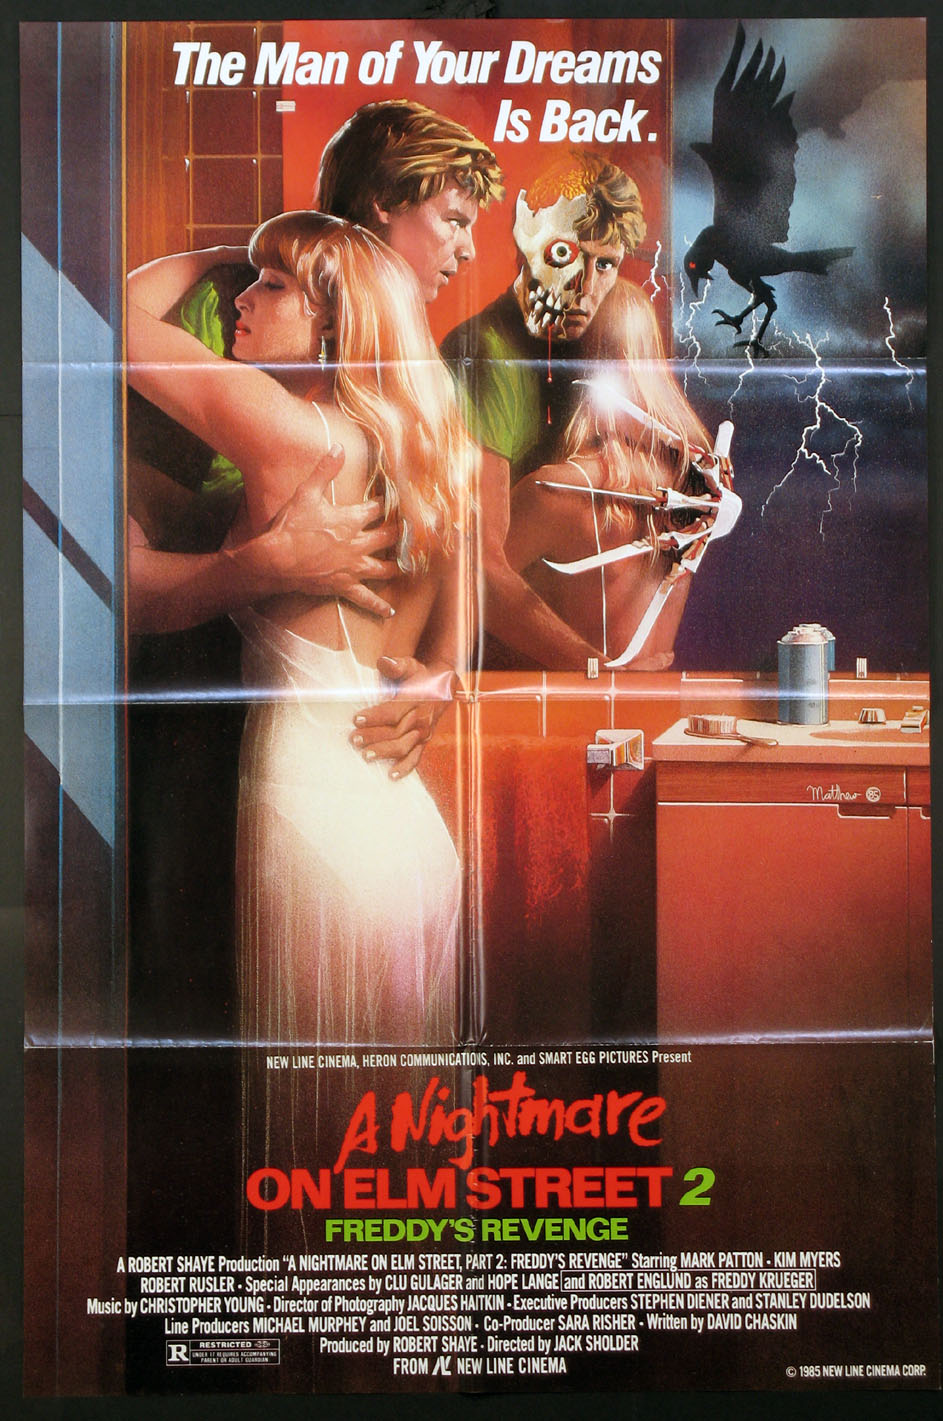 NIGHTMARE ON ELM STREET 2, A @ FilmPosters.com